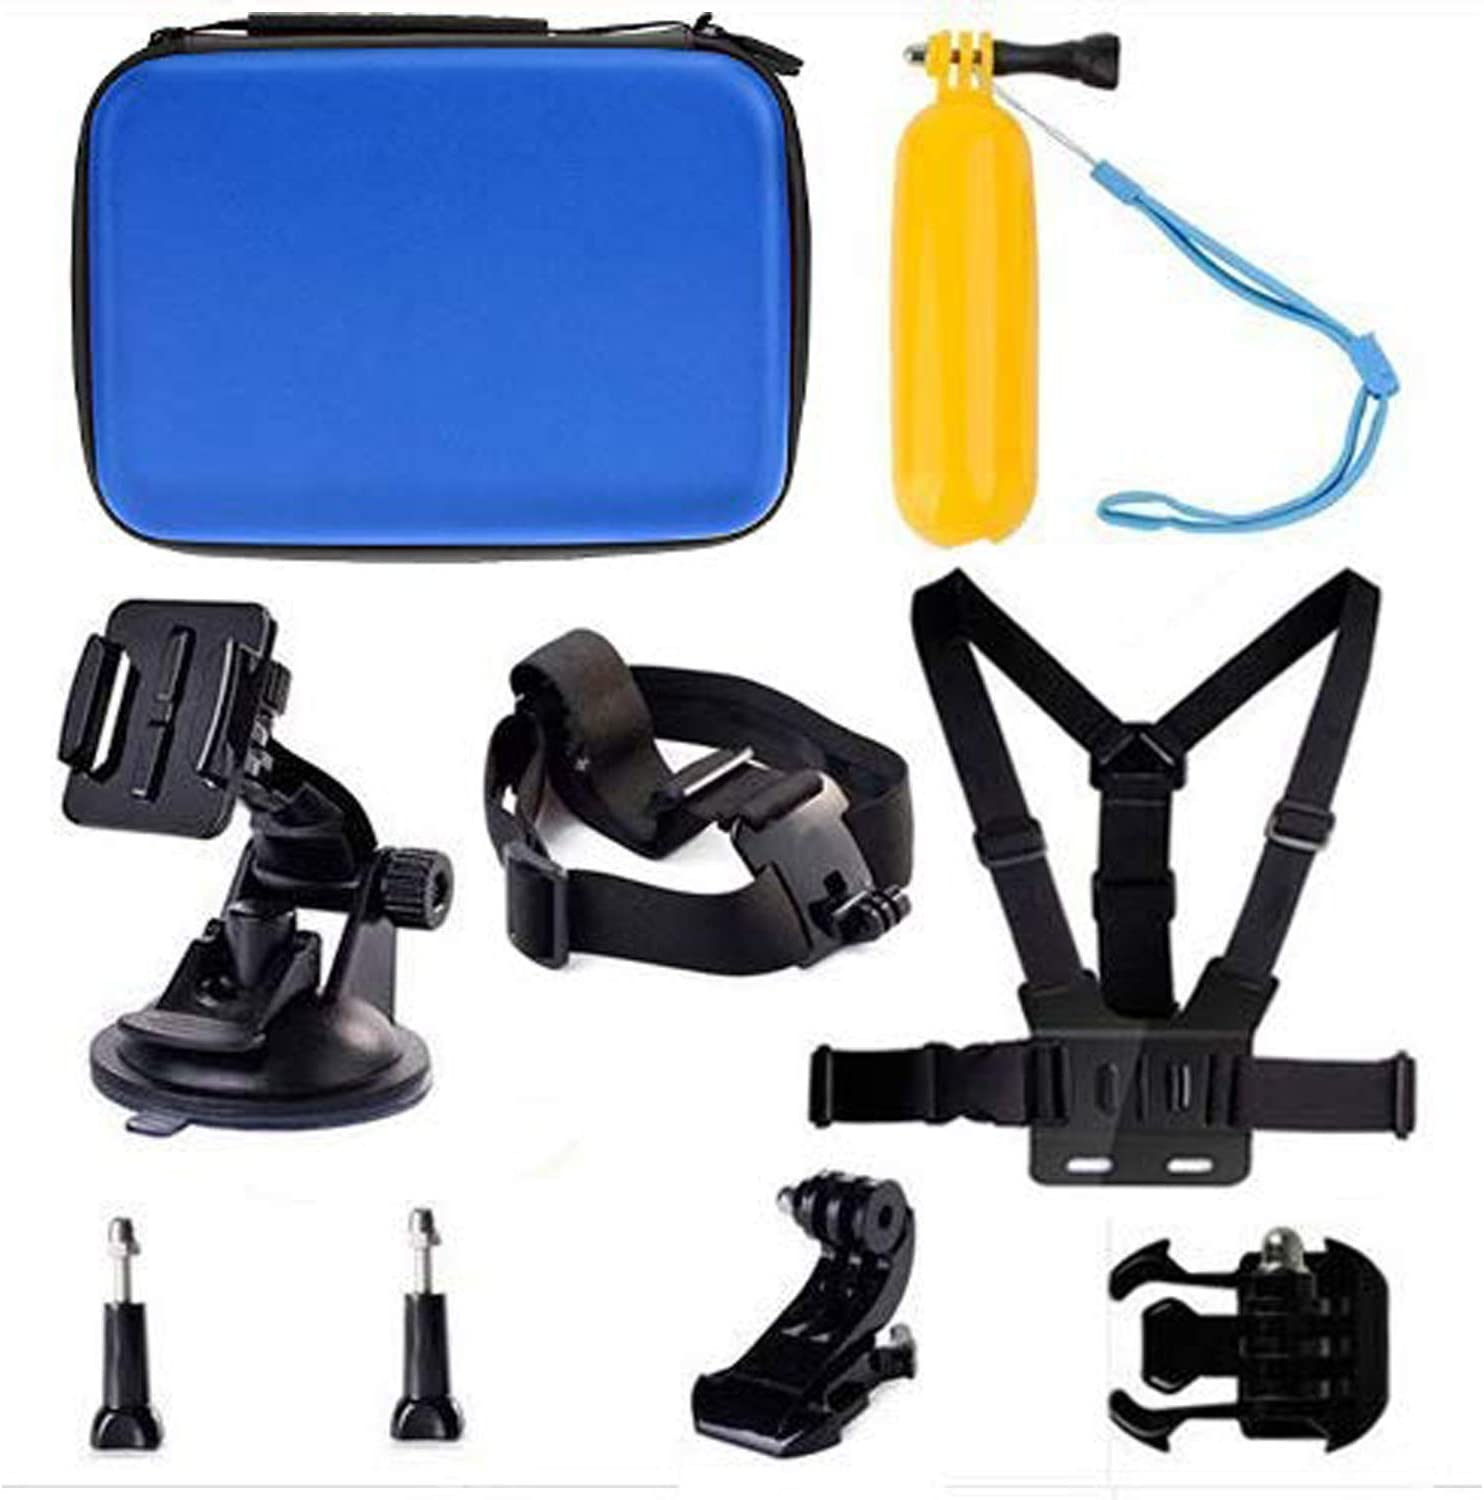 Navitech 9 in 1 Action Camera Accessory Combo Kit and Rugged Blue Storage Case Compatible with The XIKEZAN 4K WiFi Action Camera 16MP Waterproof Sports Diving Cam DV Camcorder with 2.0 LCD Screen